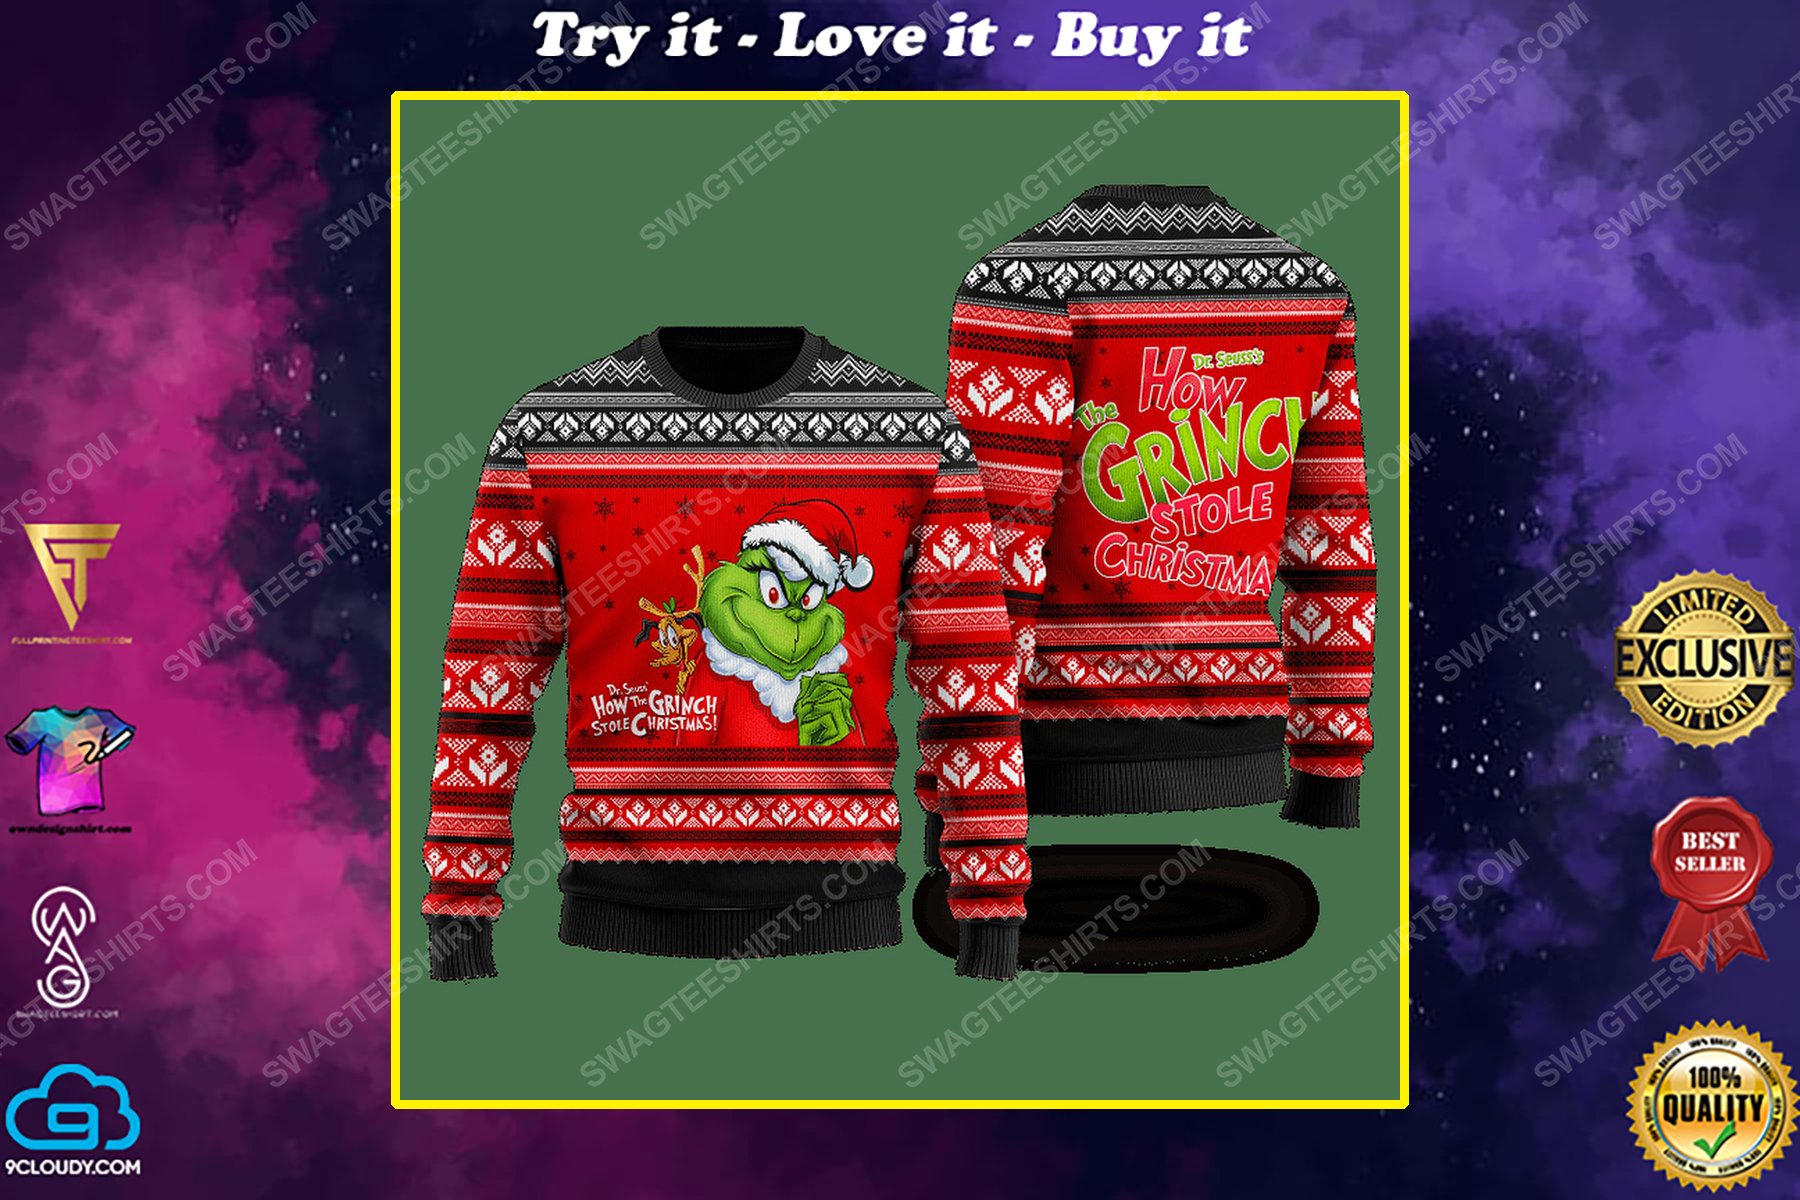 How grinch stole christmas ugly christmas sweater 1